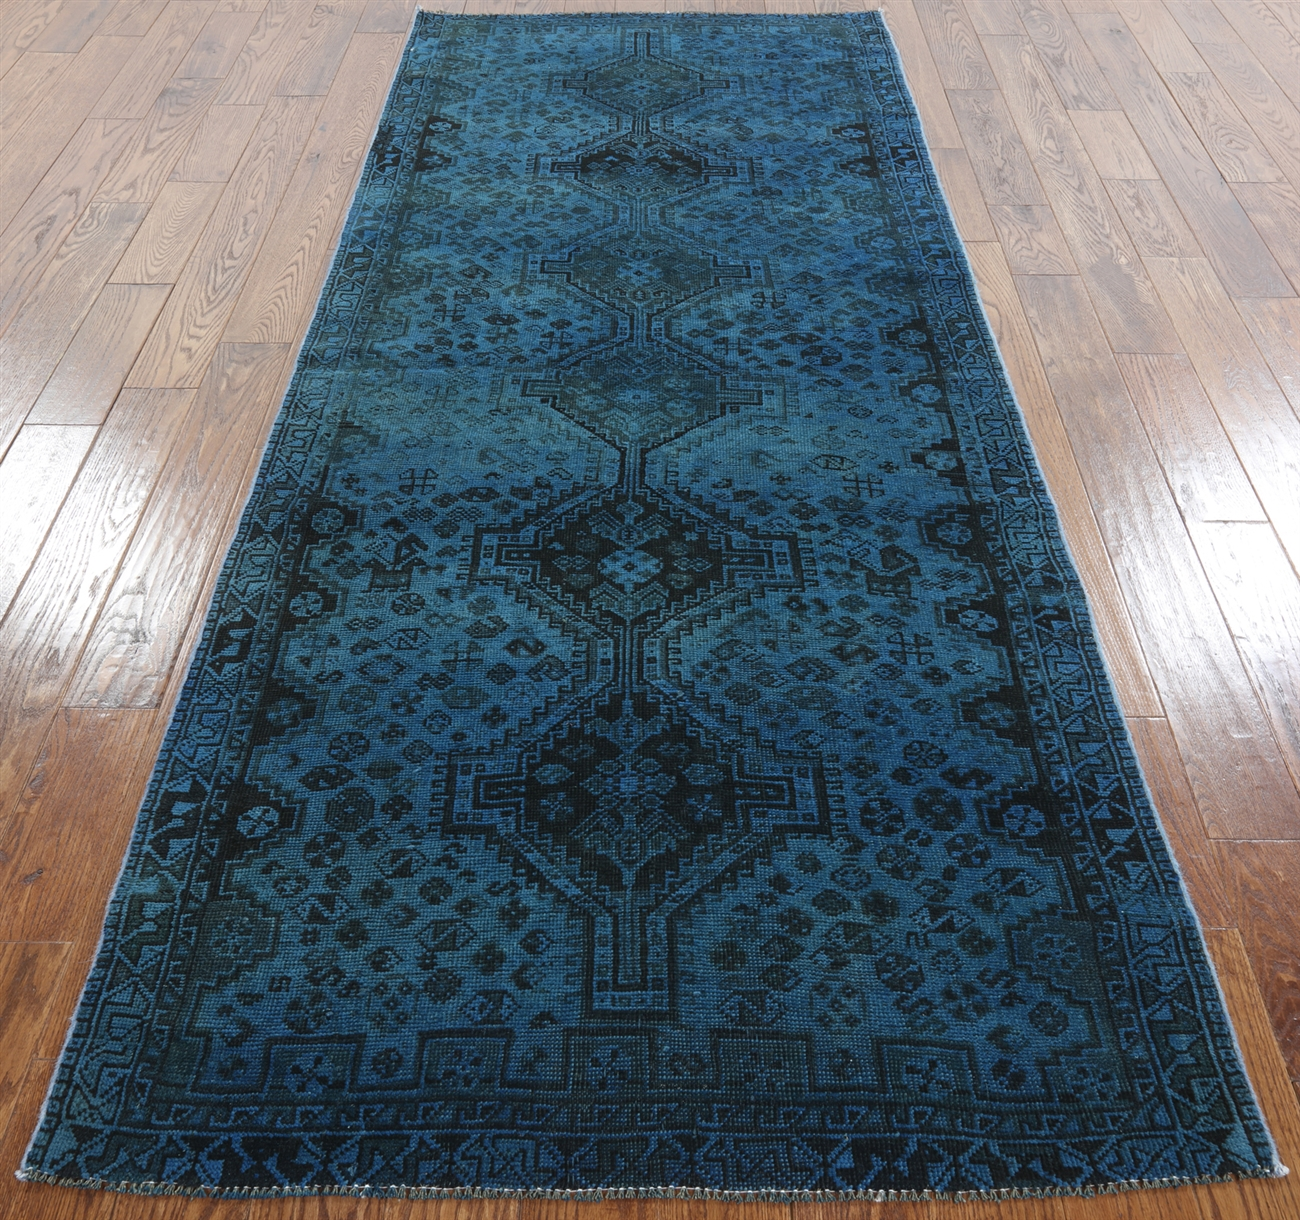 10x10 Square New Oushak Oriental Wool Area Rug: 4'x9' Runner Overdyed Hand Knotted Blue Oriental Wool Area